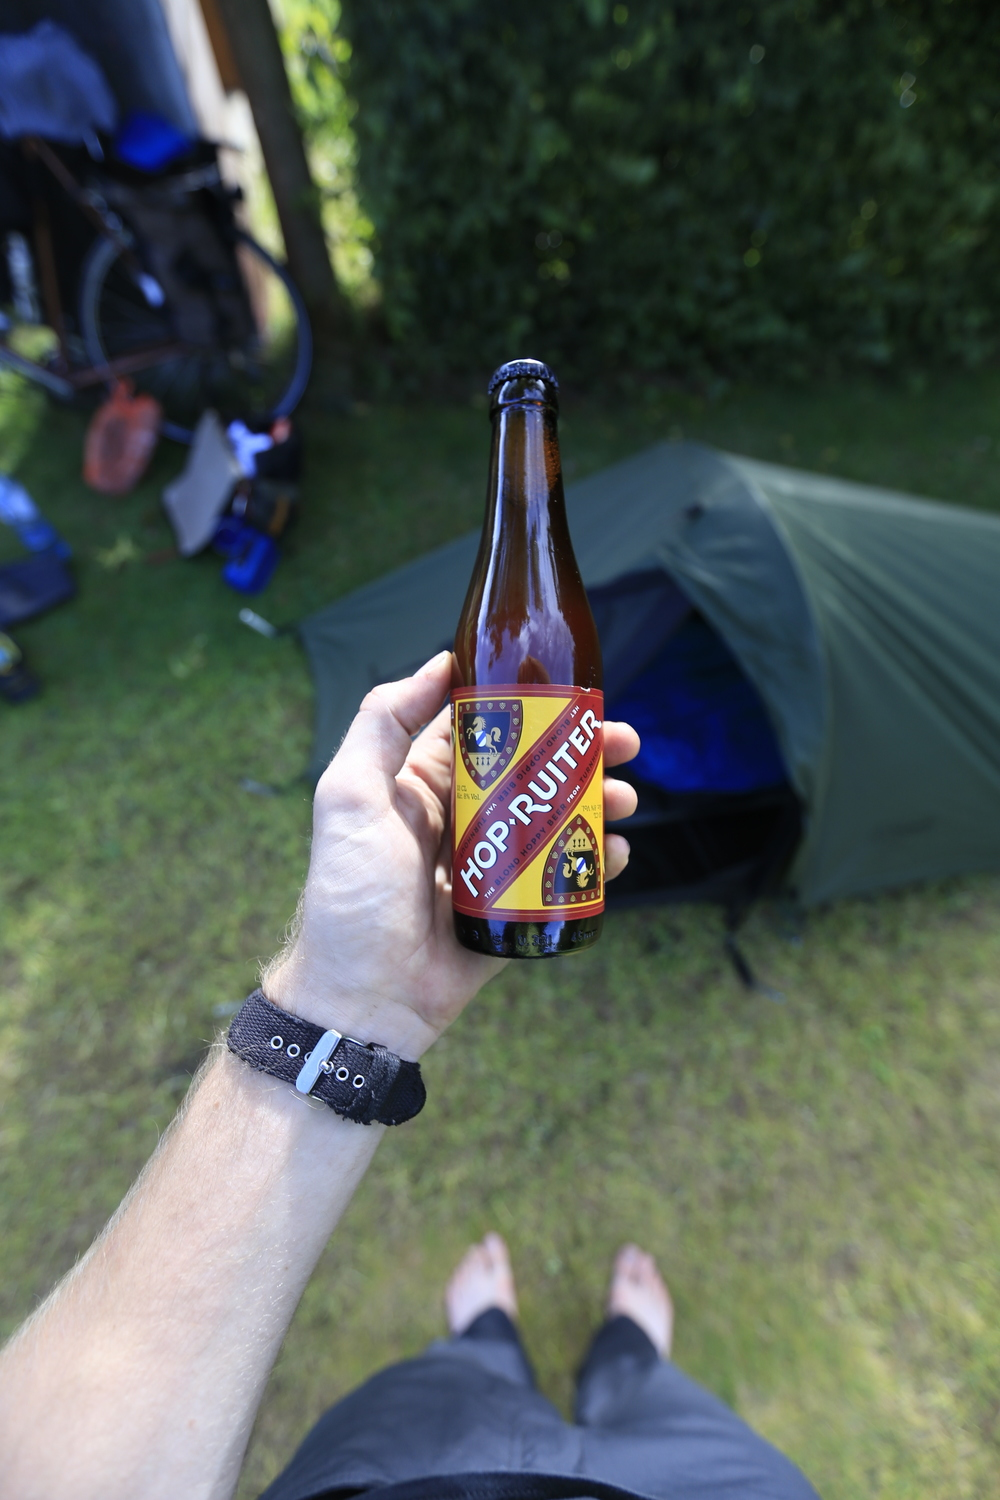 belgium beer, beer, beer blog, beer photography, bikepacking beer, food, foodie, food blog, food photography, cycle touring, cycling beer, cycling blog, bikepacking blog